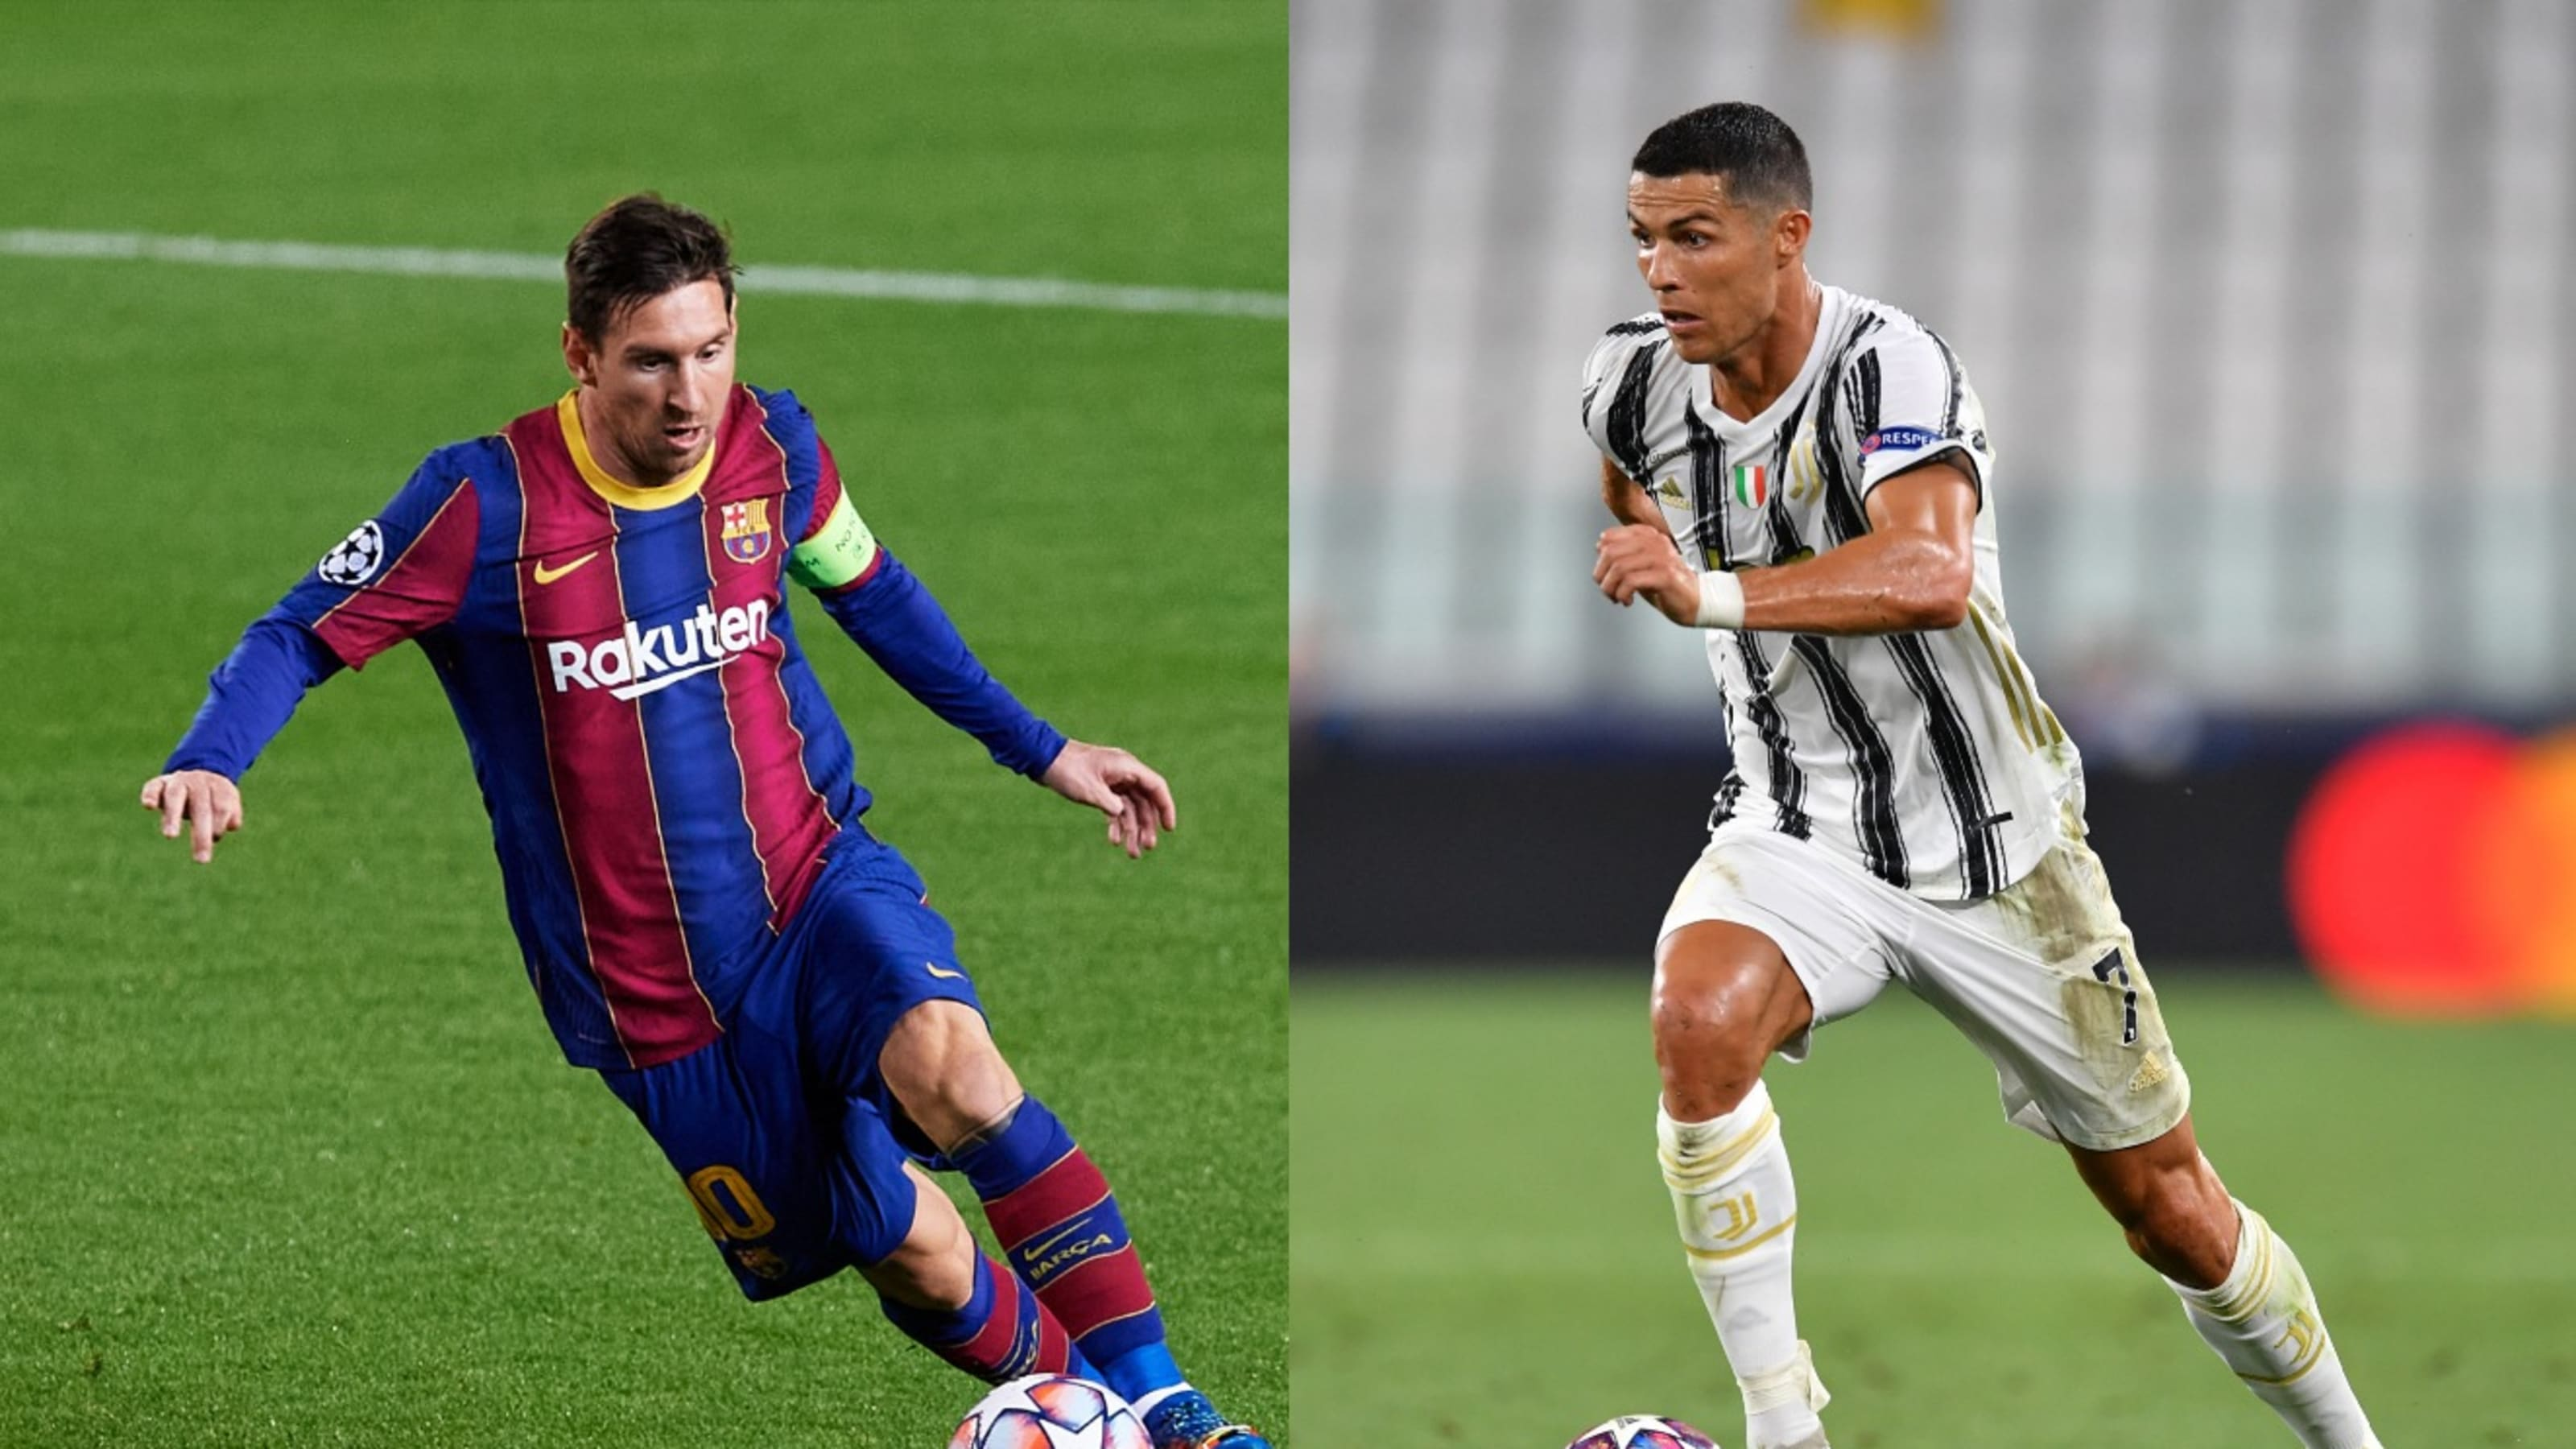 Juventus Vs Barcelona Live And Uefa Champions League 2020 21 Matchweek 2 Fixtures India Start Times And Where To Watch Live Stream In India